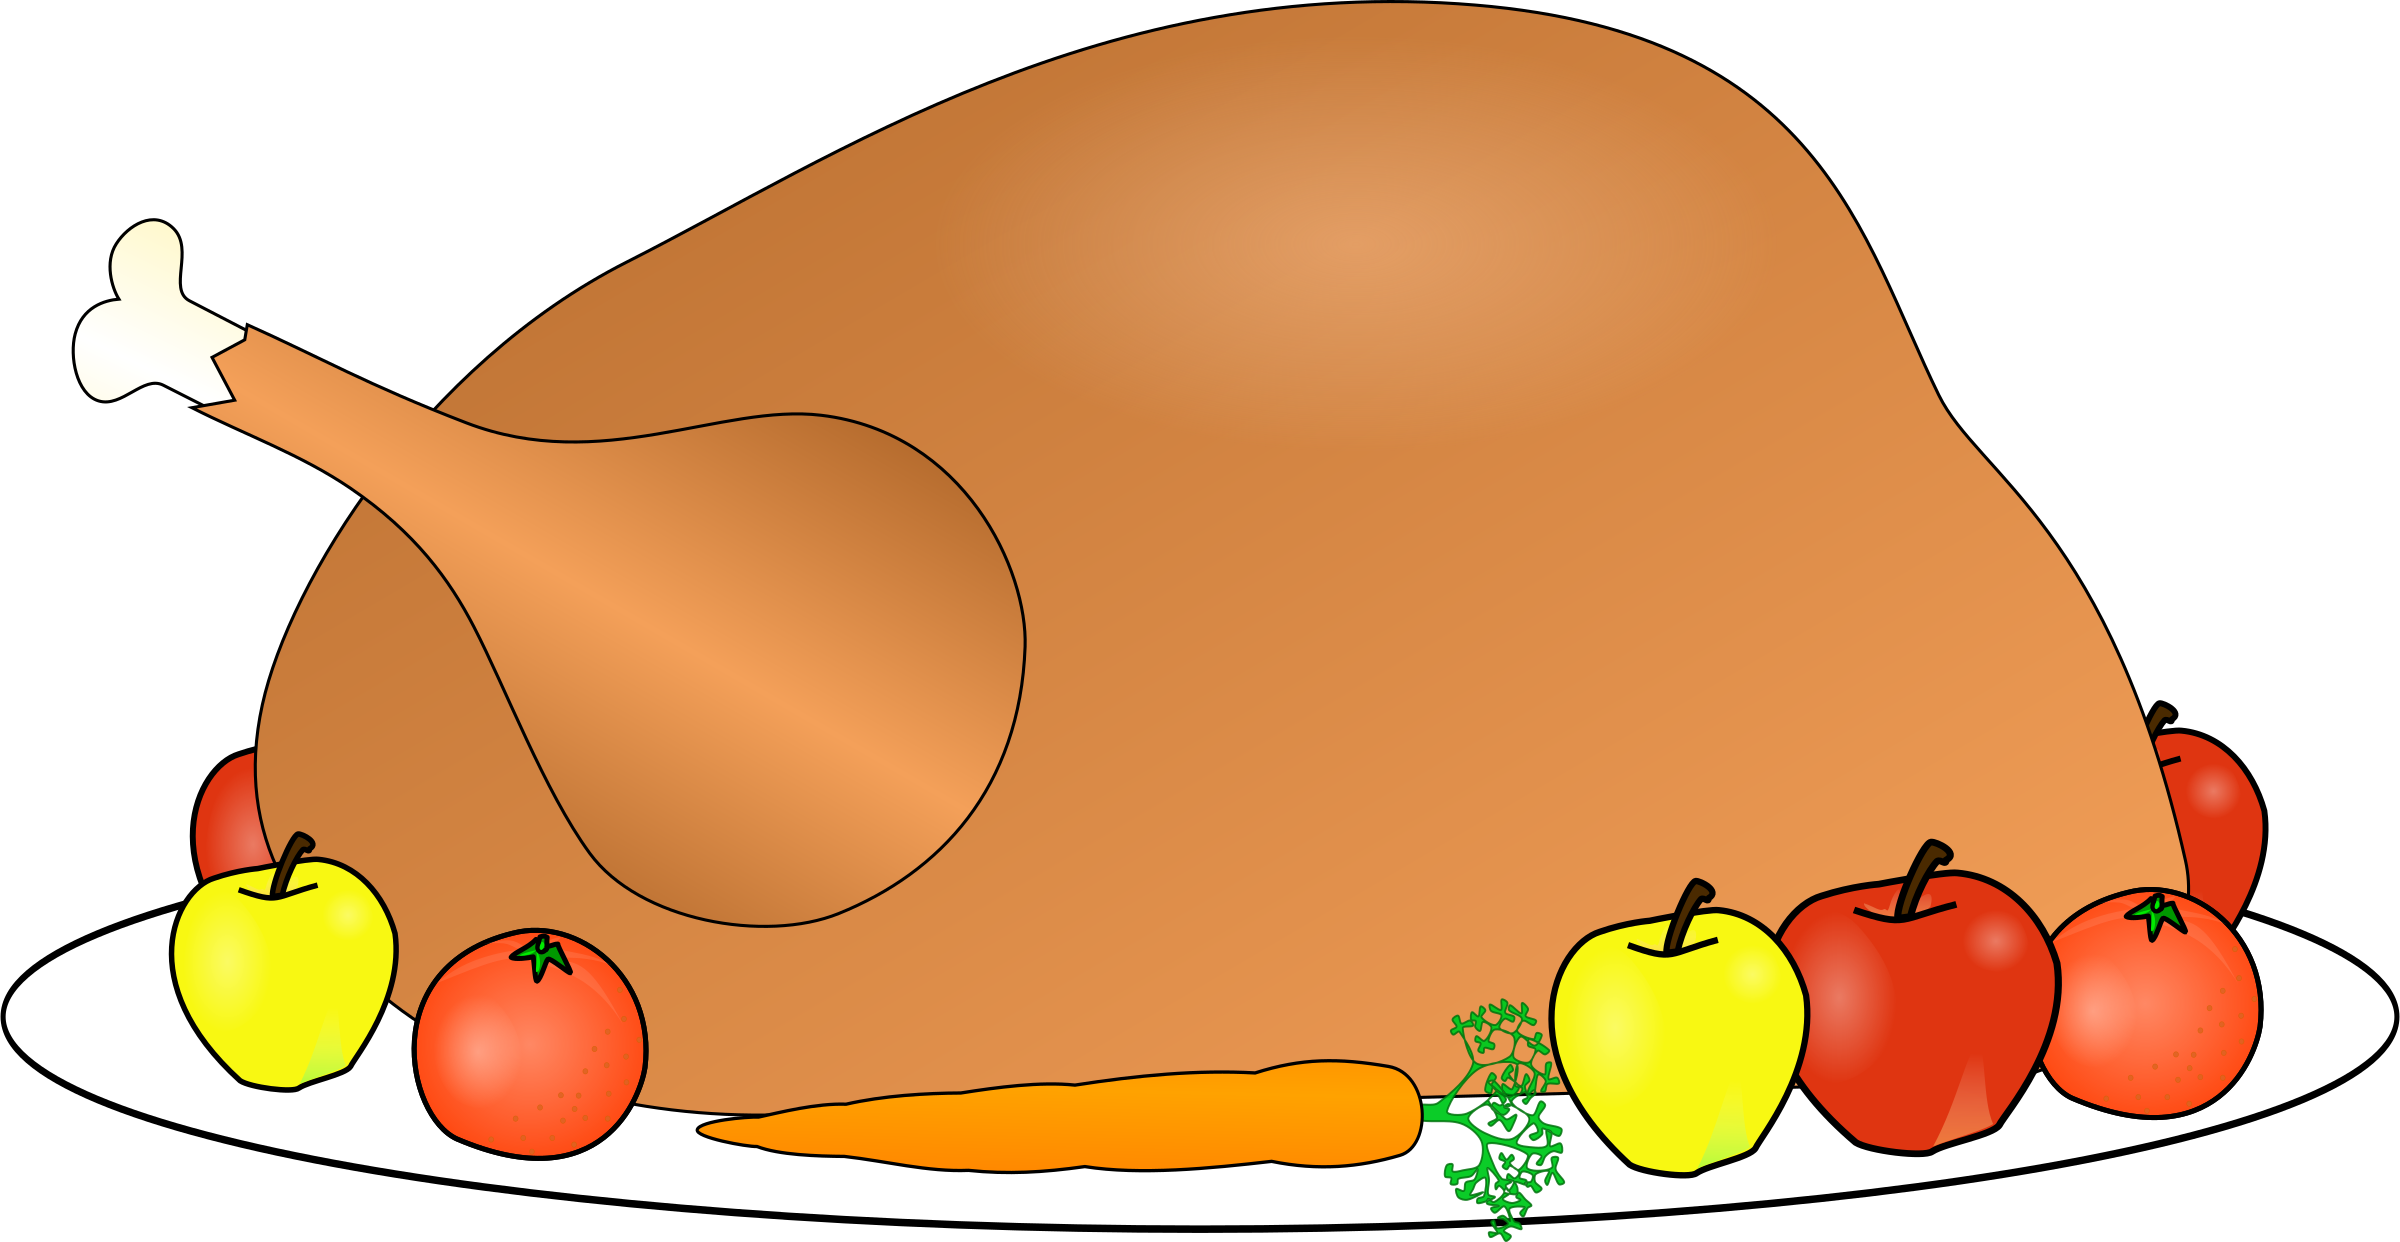 Turkey platter with fruit. Pear clipart animated